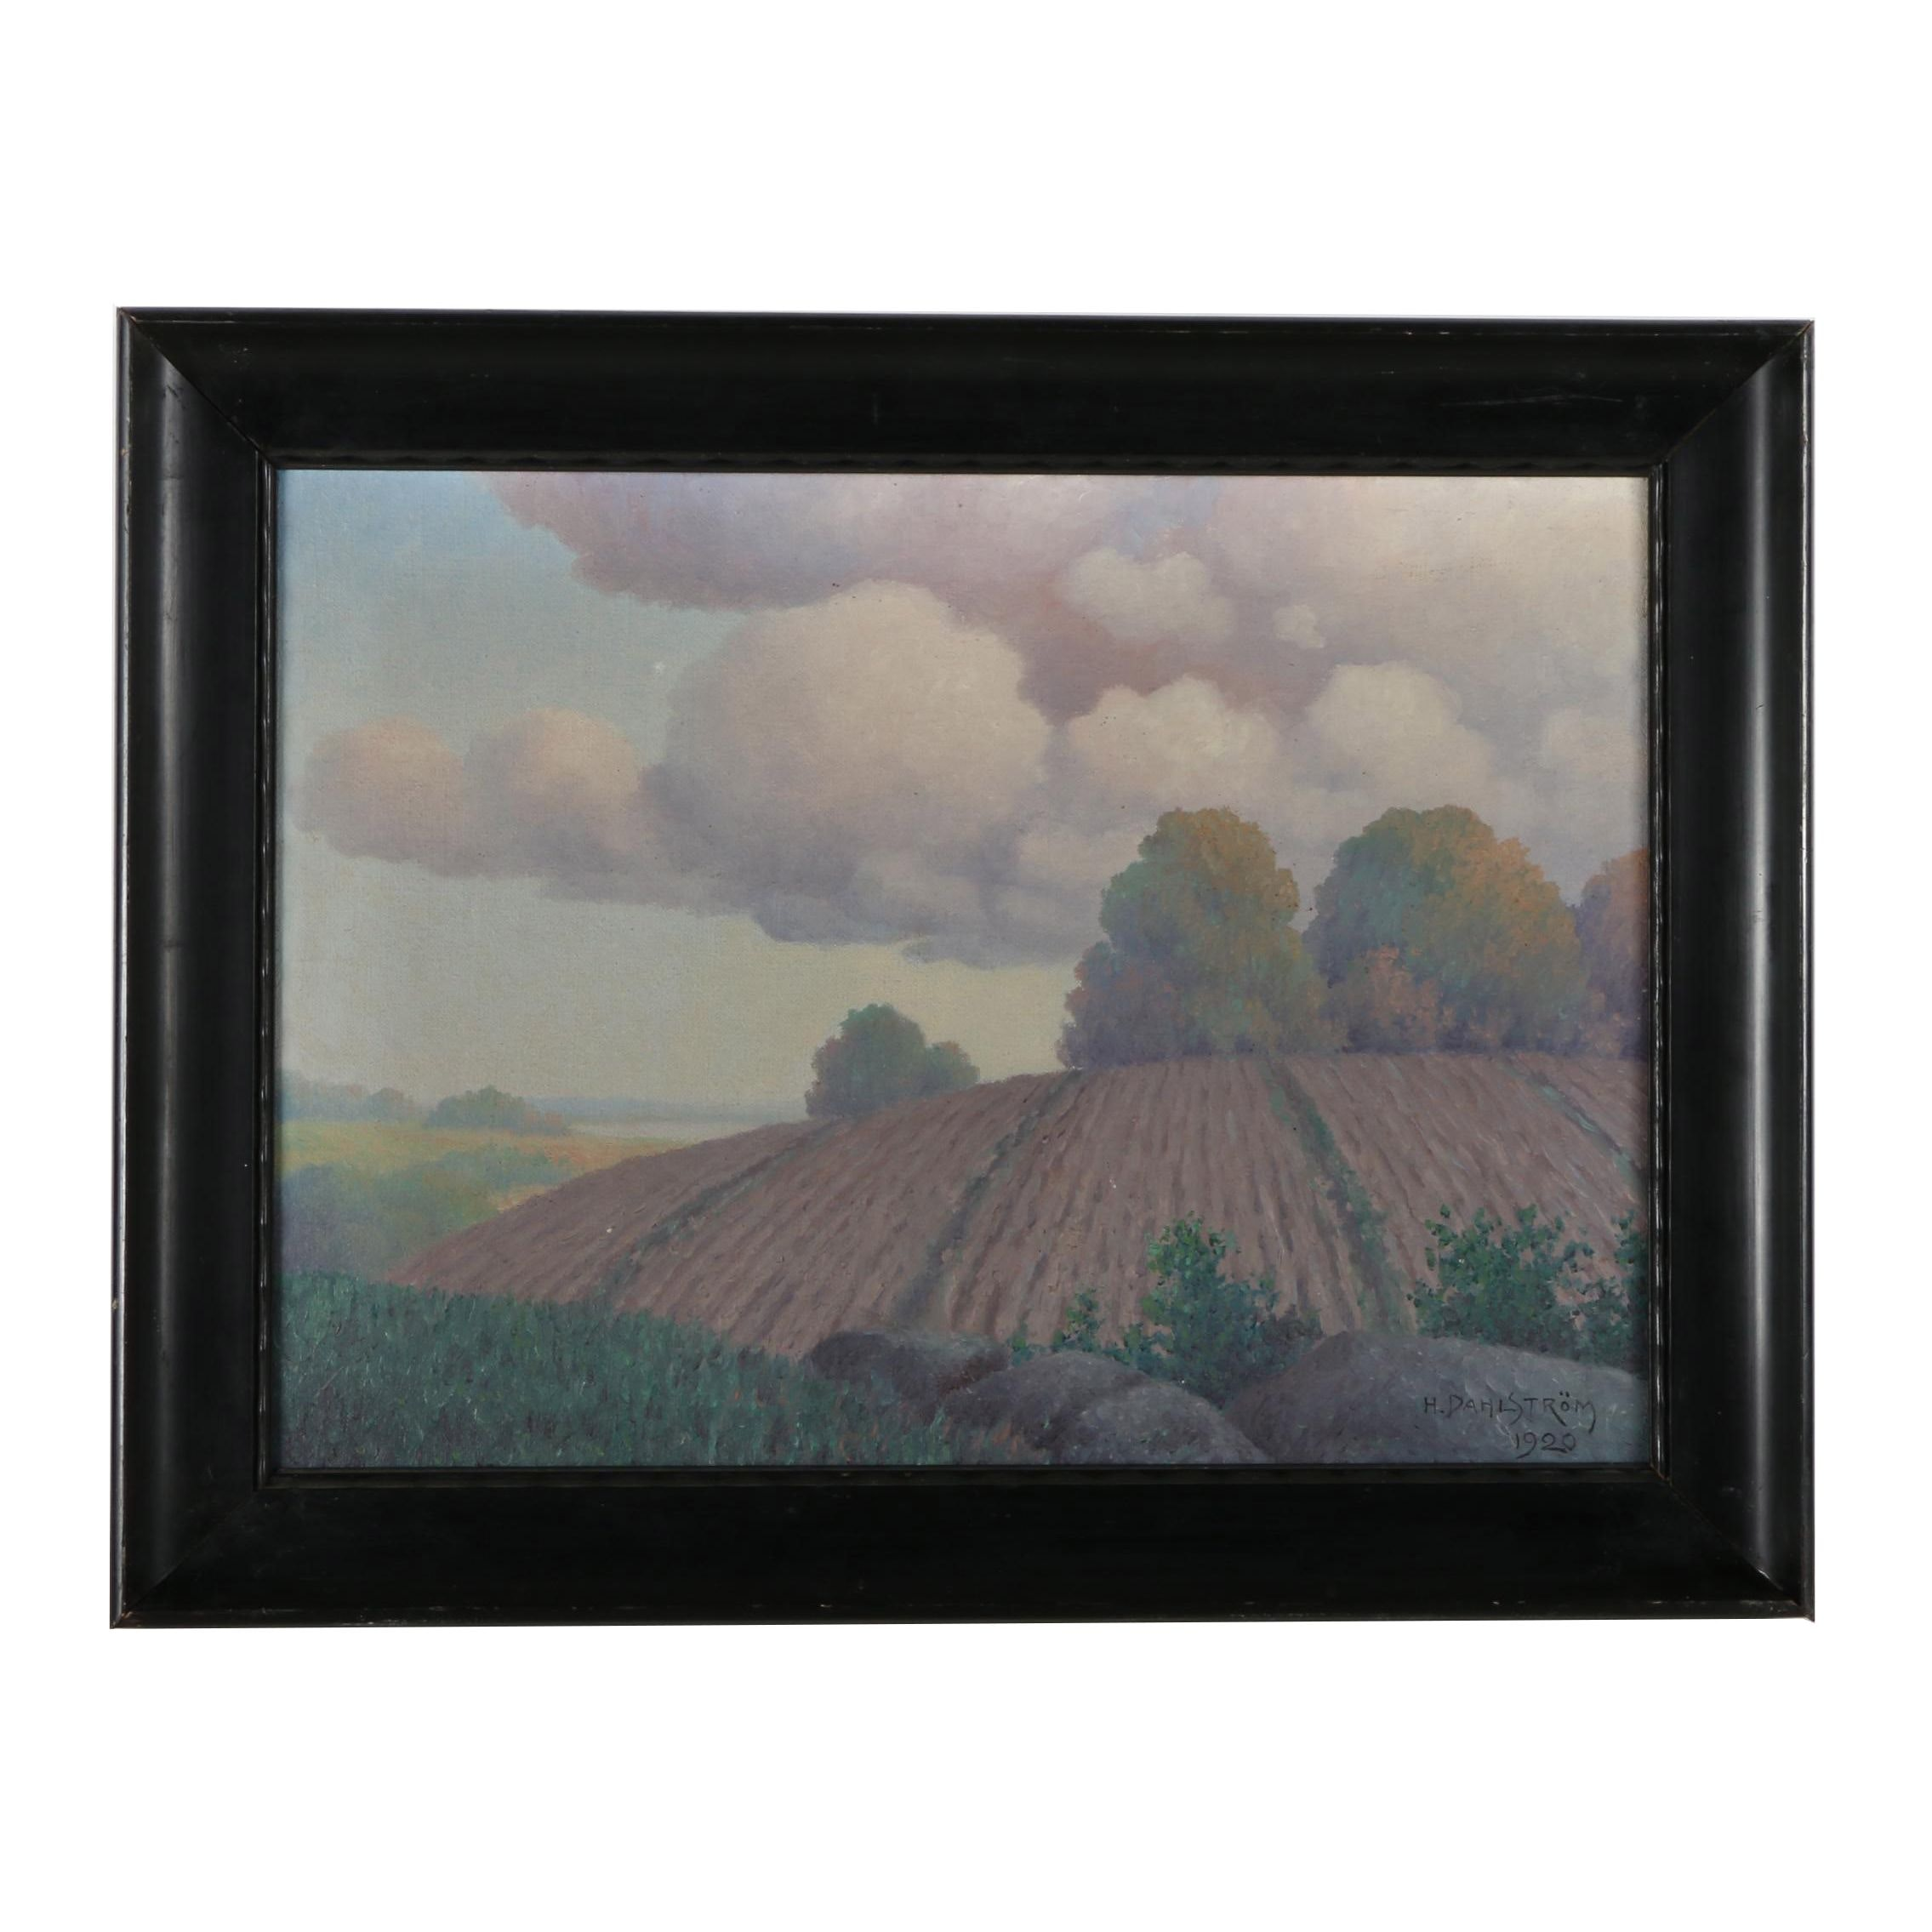 H. Dahlstrom Oil Landscape Painting on Canvas